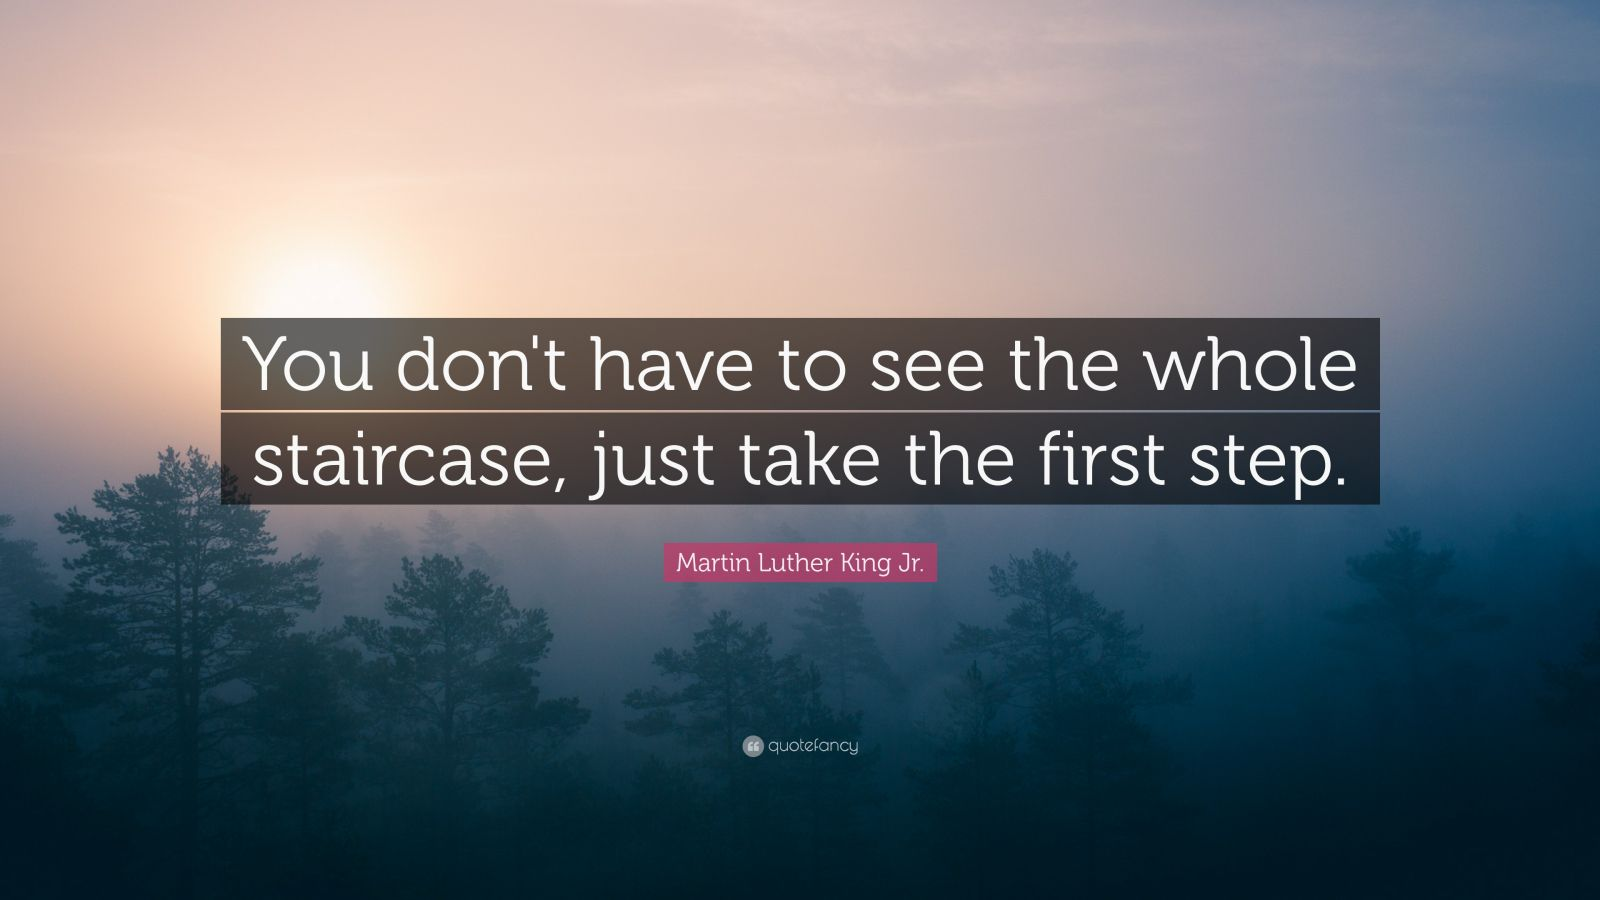 Napoleon Hill Quotes Wallpaper Martin Luther King Jr Quote You Don T Have To See The